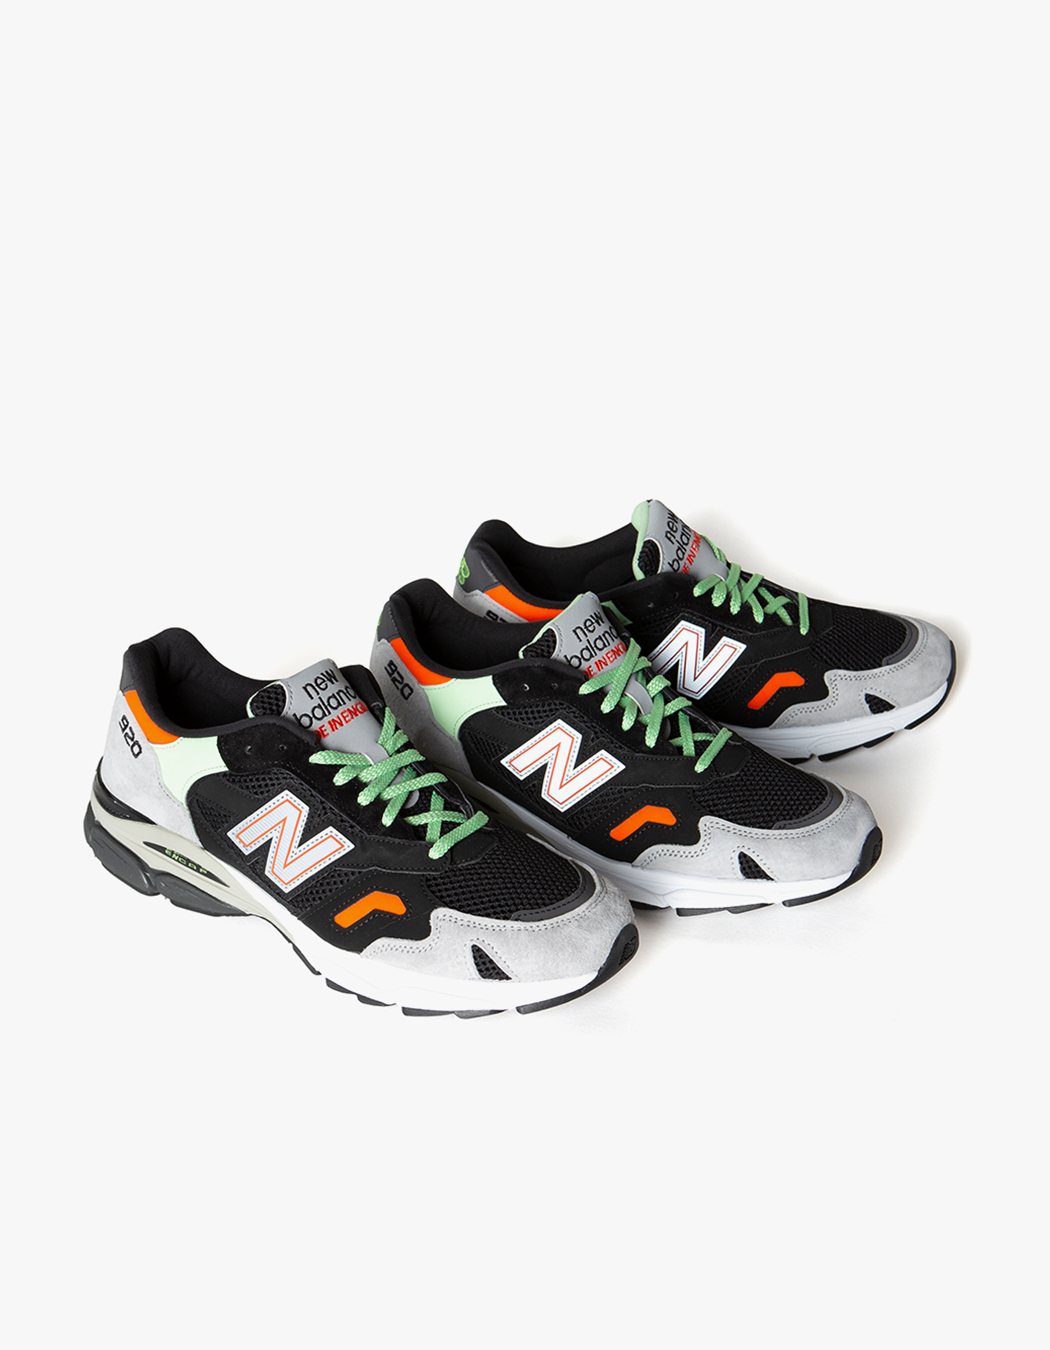 New Balance - Heights. Exclusive M920KGG